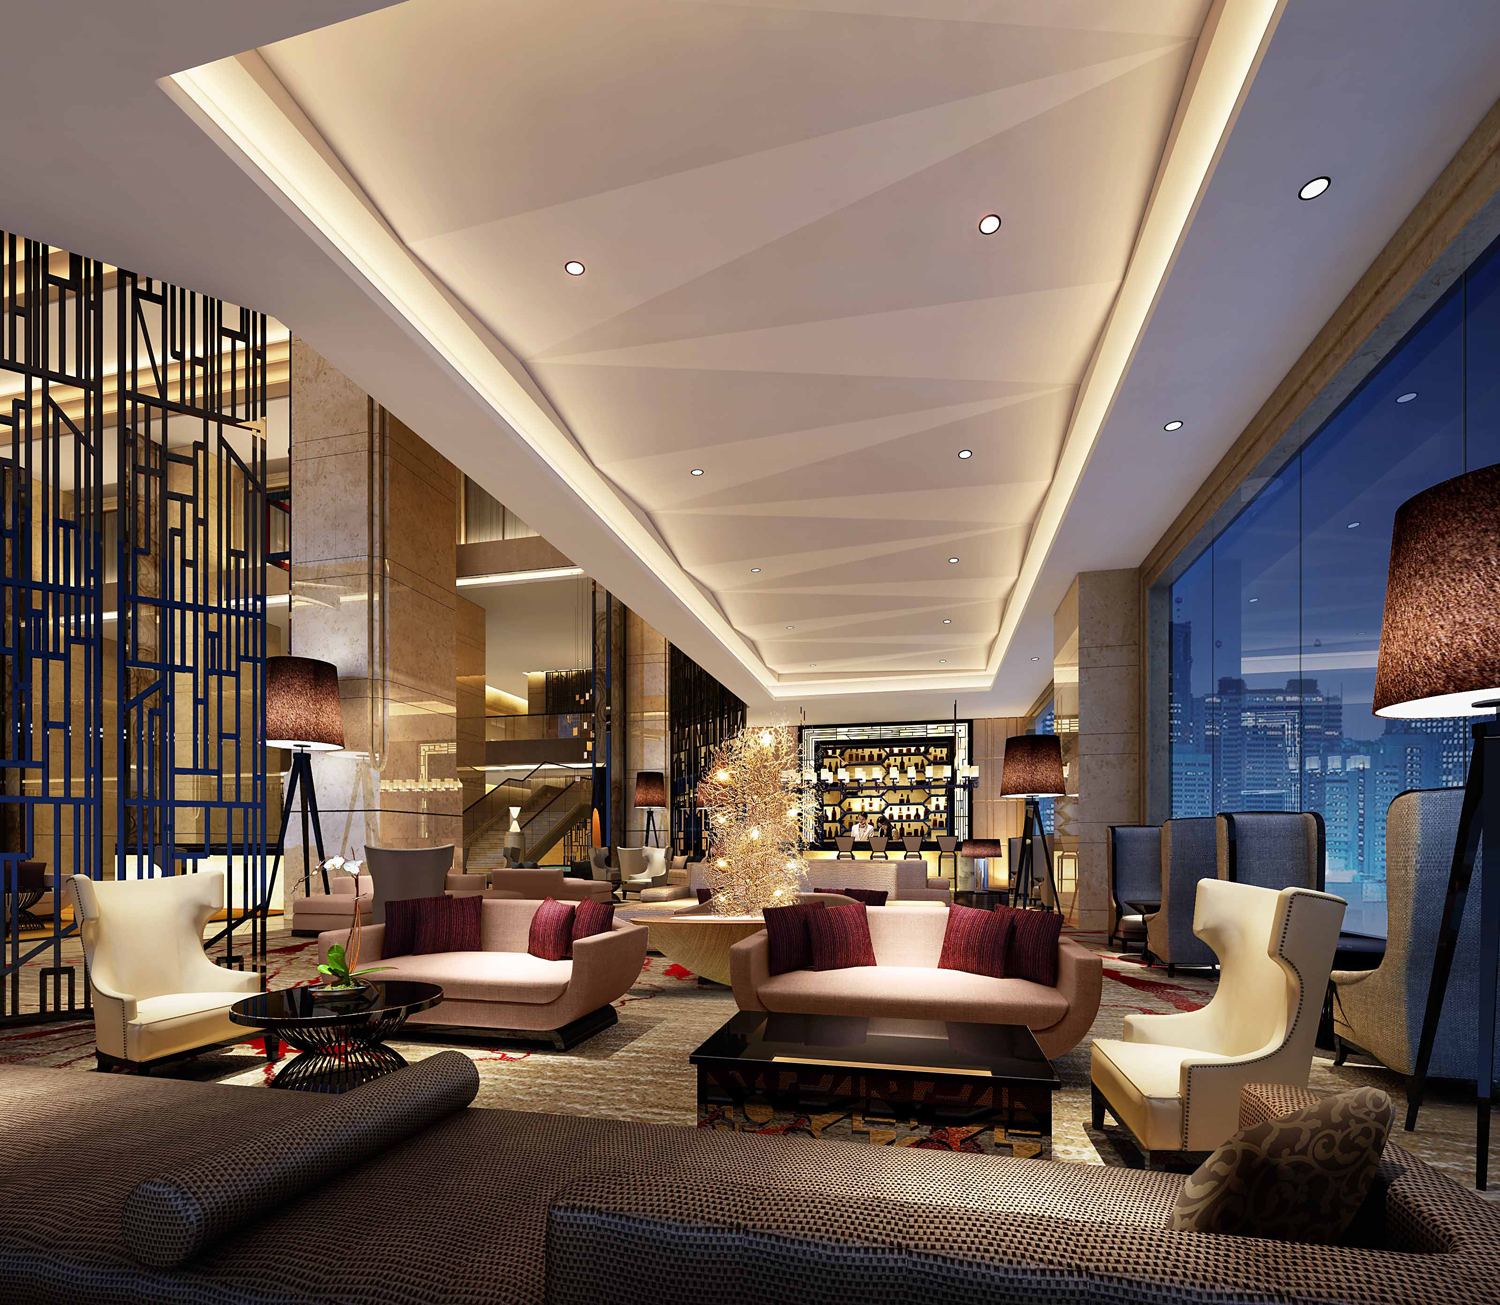 Hilton hotels resorts opens hotel in zhongshan china for Equipement hotel